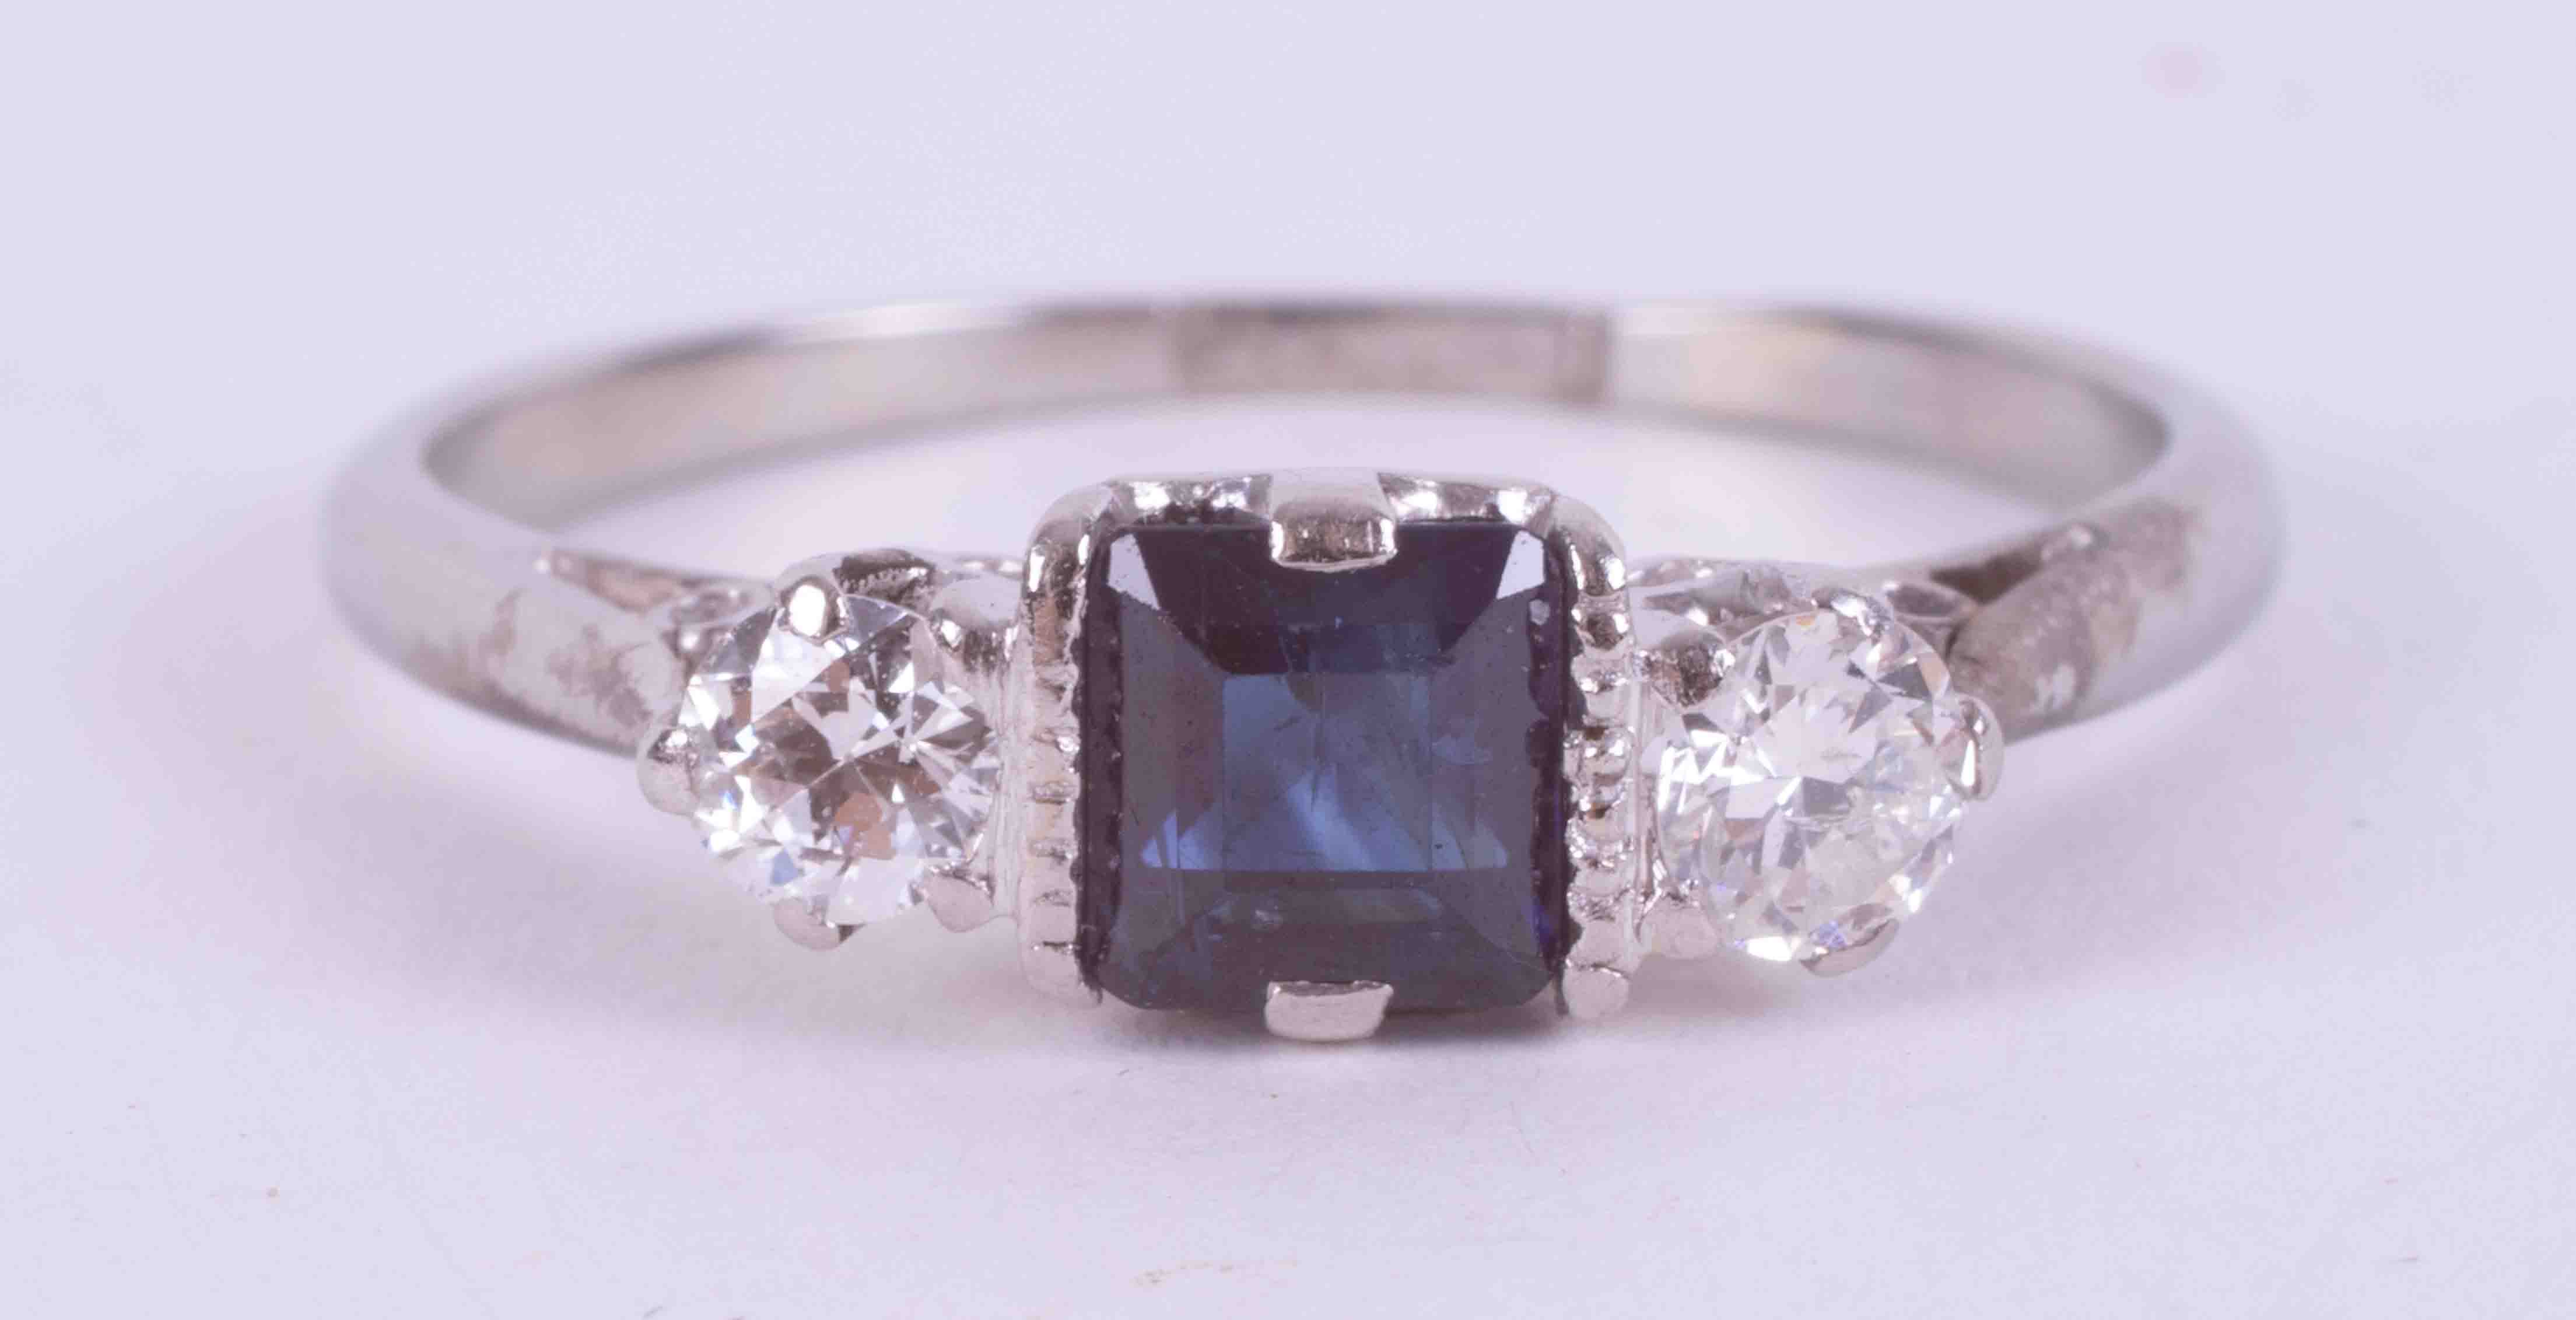 A platinum three stone ring set with a central square cut sapphire, approx. 0.36 carats, with one